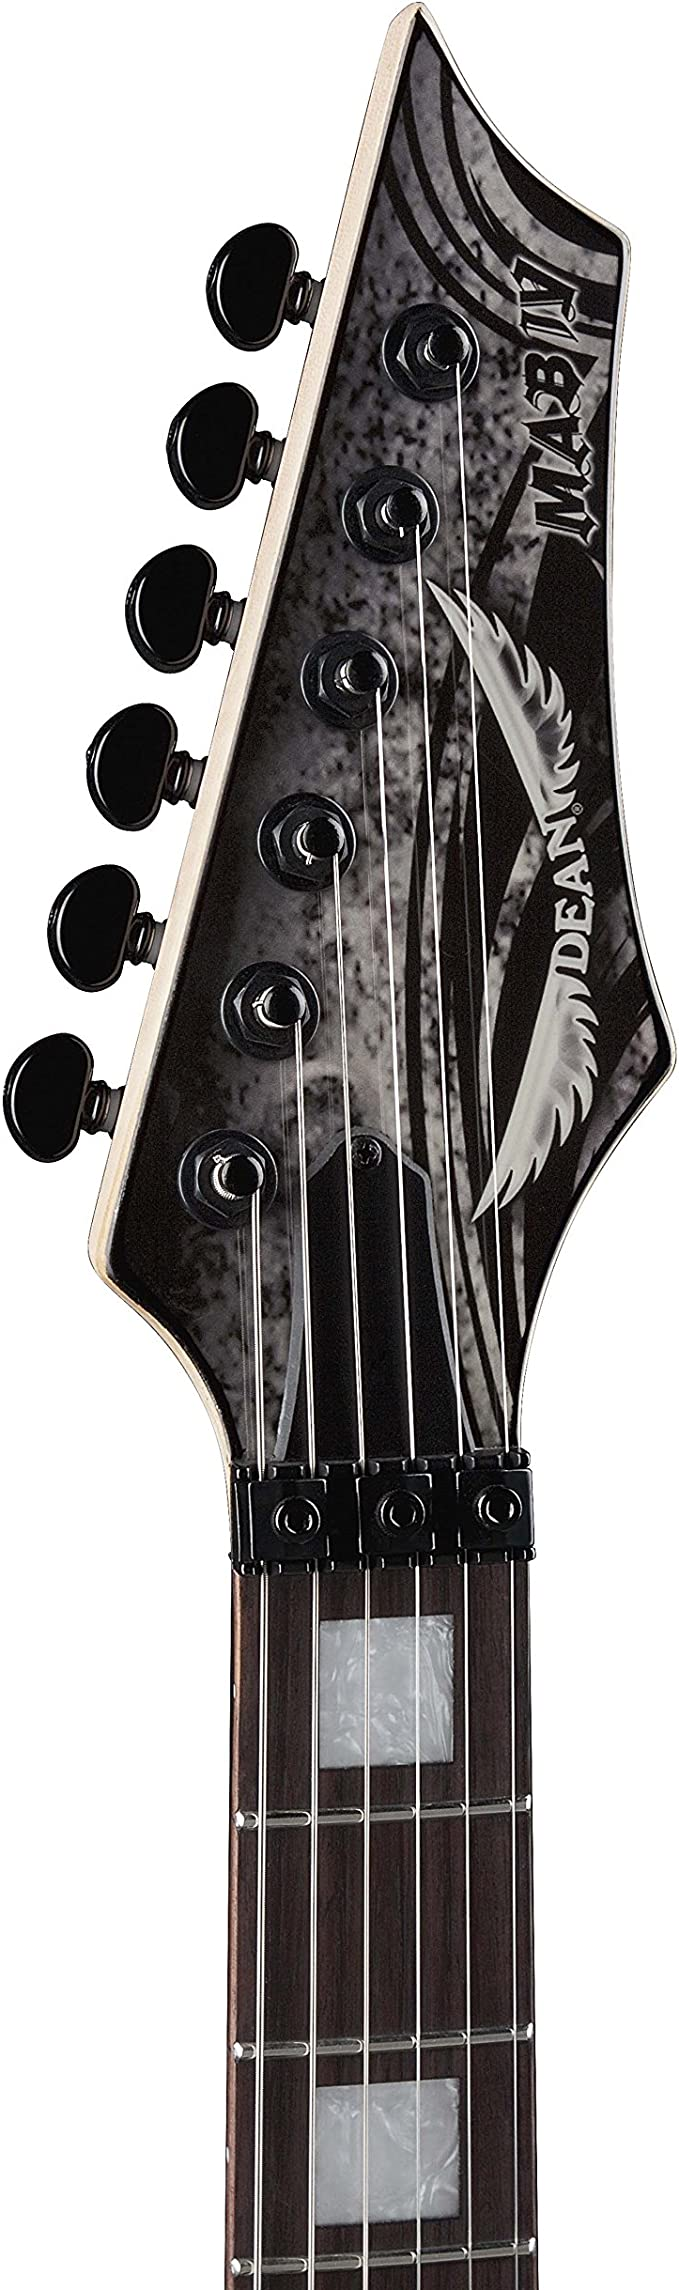 Dean Guitars Michael Batio MAB4 Gauntlet - Guitarra eléctrica ...